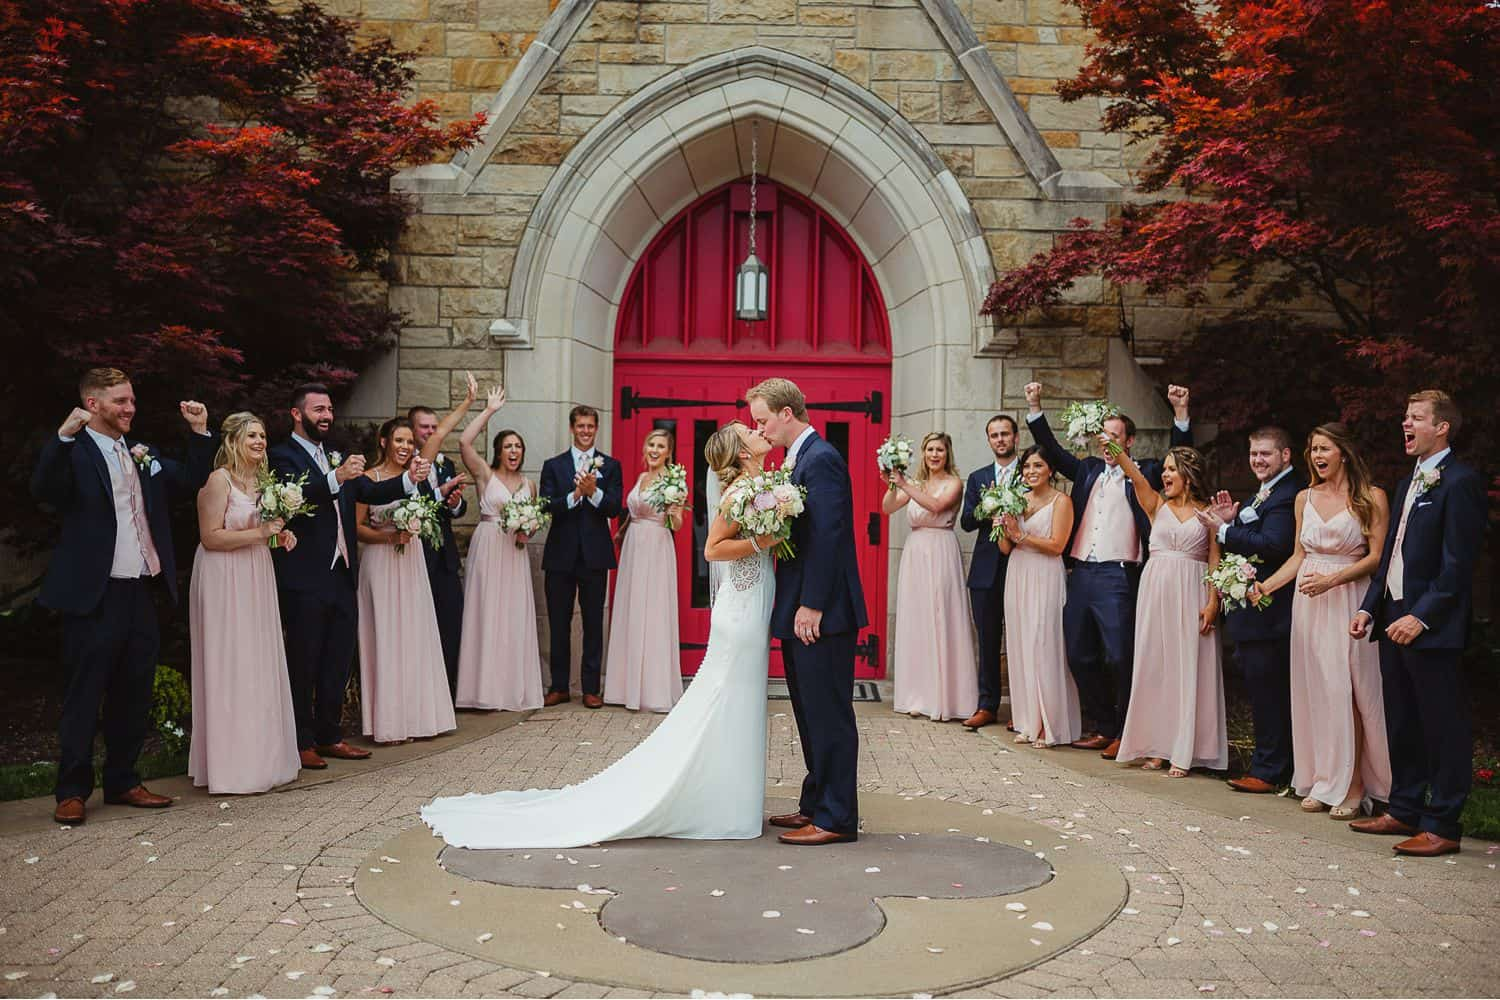 A bride and groom kiss at the center of a circle of bridesmaids and groomsmen.